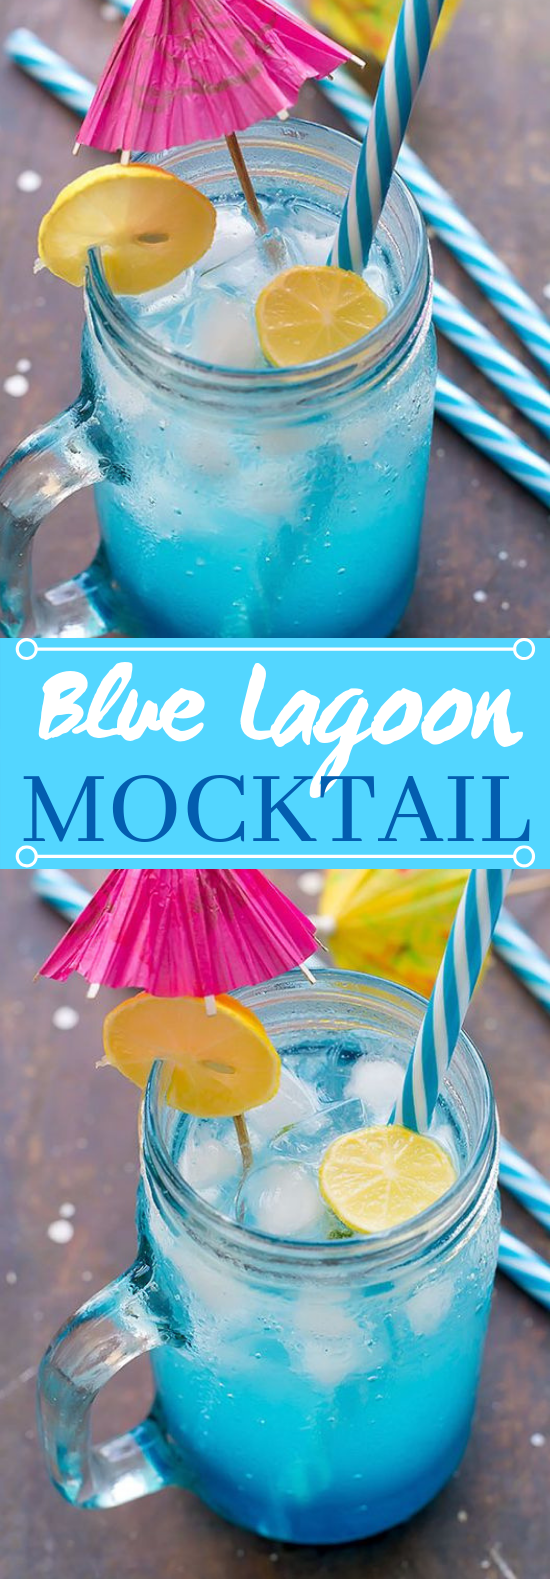 Blue Lagoon Mocktail #drinks #kidfriendly